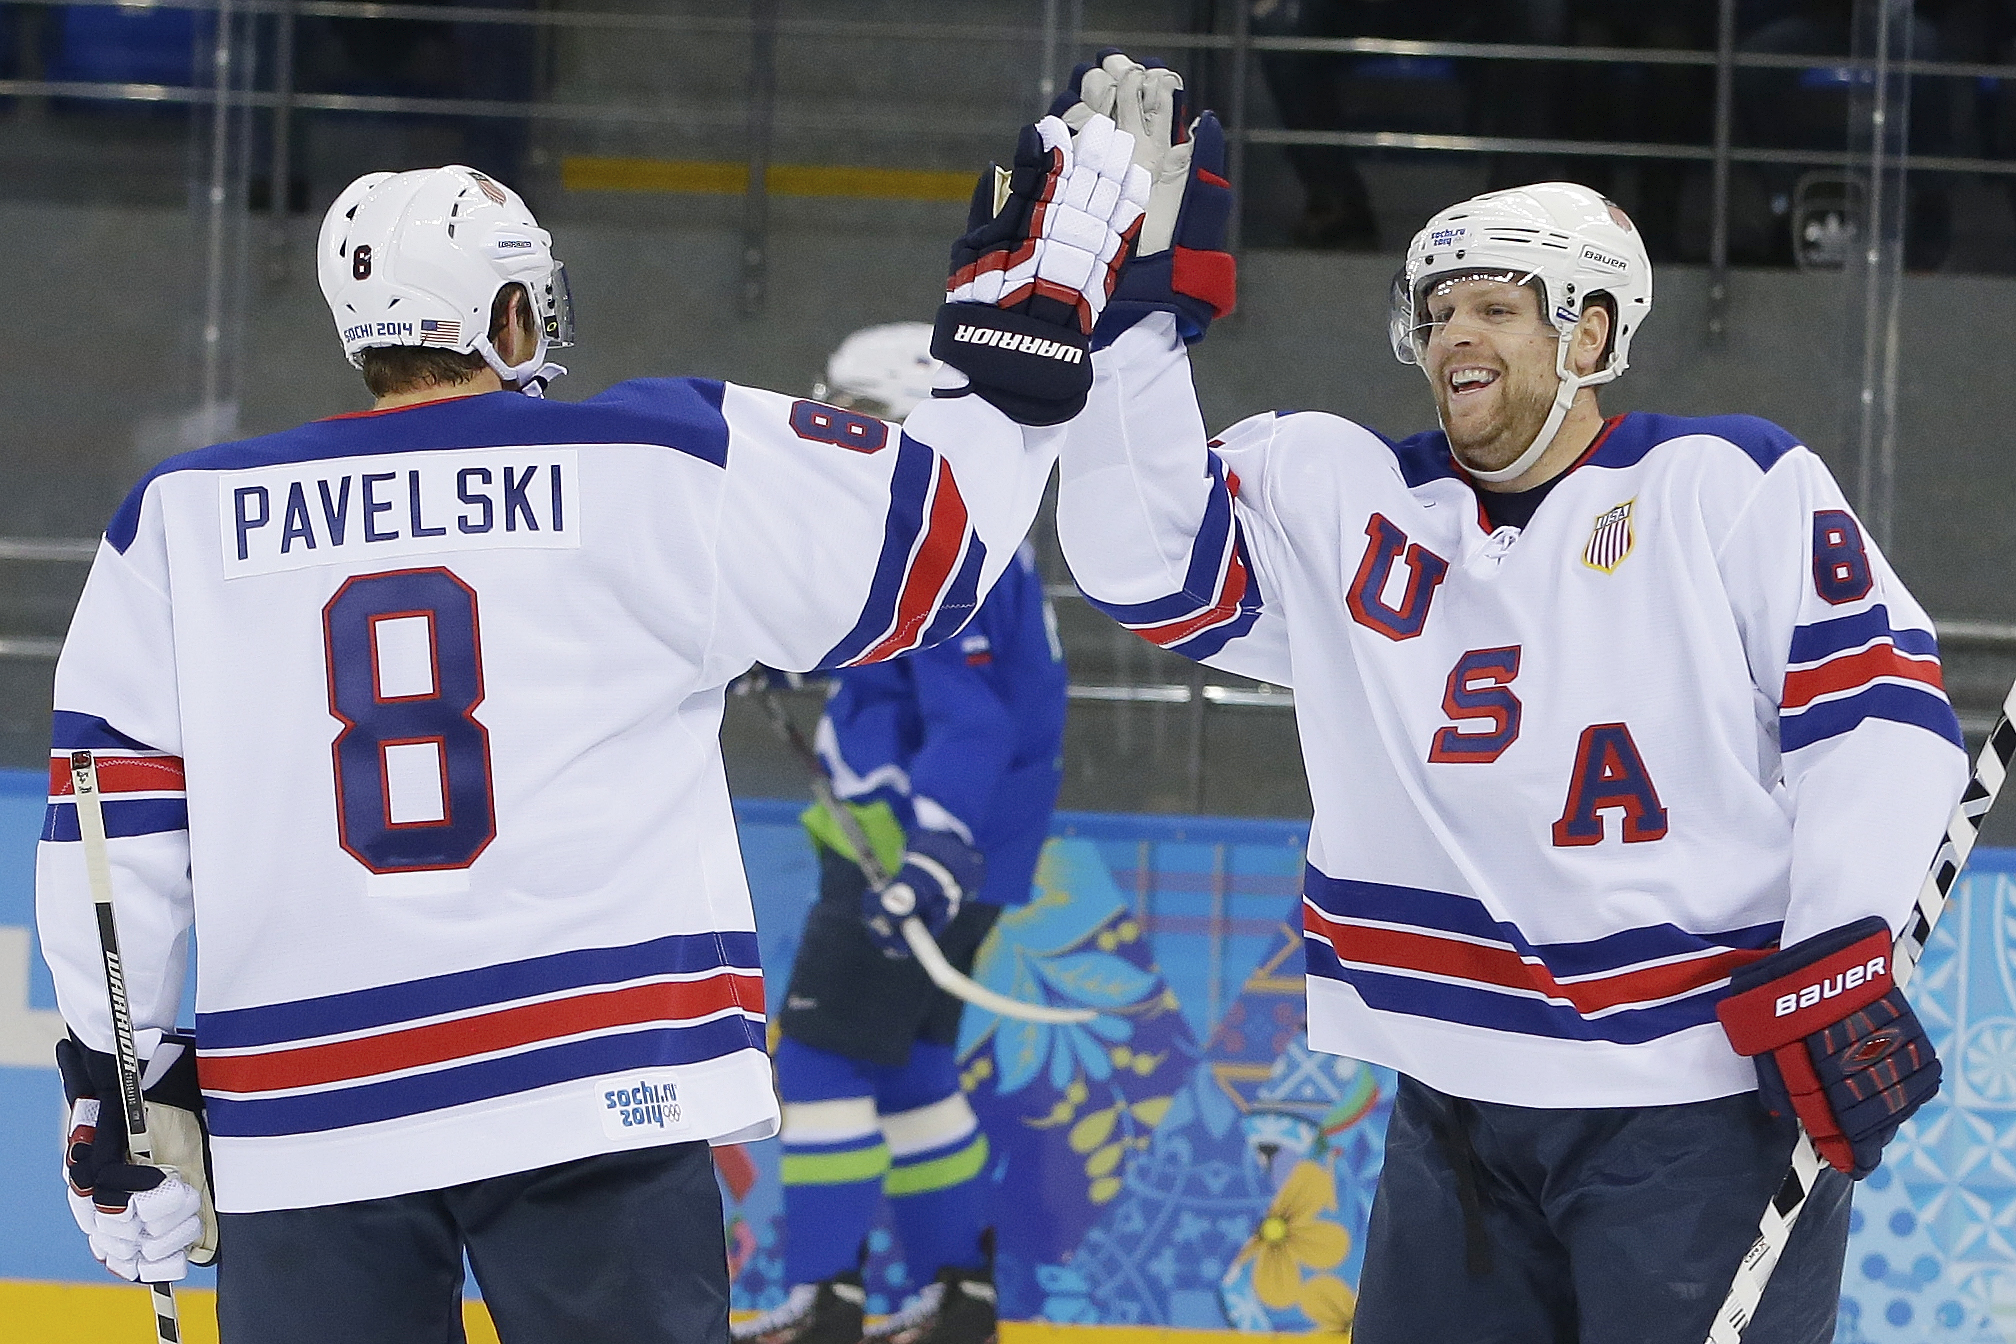 USA forward Phil Kessel, right, celebrates his second goal with teammate Joe Pavelski during the 2014 Winter Olympics men's ice hockey game against Slovenia at Shayba Arena Sunday, Feb. 16, 2014, in Sochi, Russia. (AP Photo/Matt Slocum)